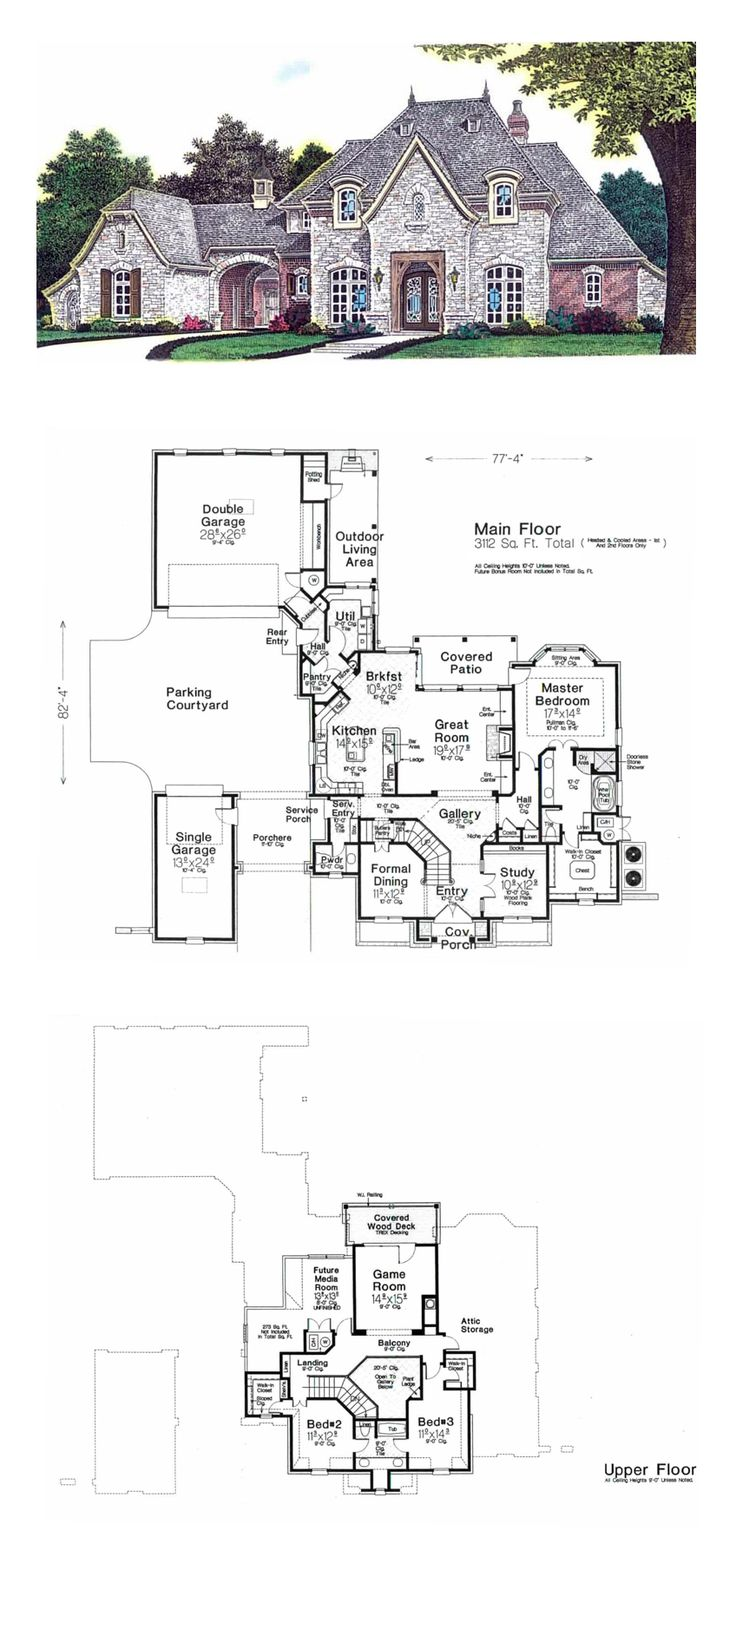 European House Plan 92230 | Total Living Area: 3112 sq. ft., 3 bedrooms and 2.5 bathrooms. #europeanhouse